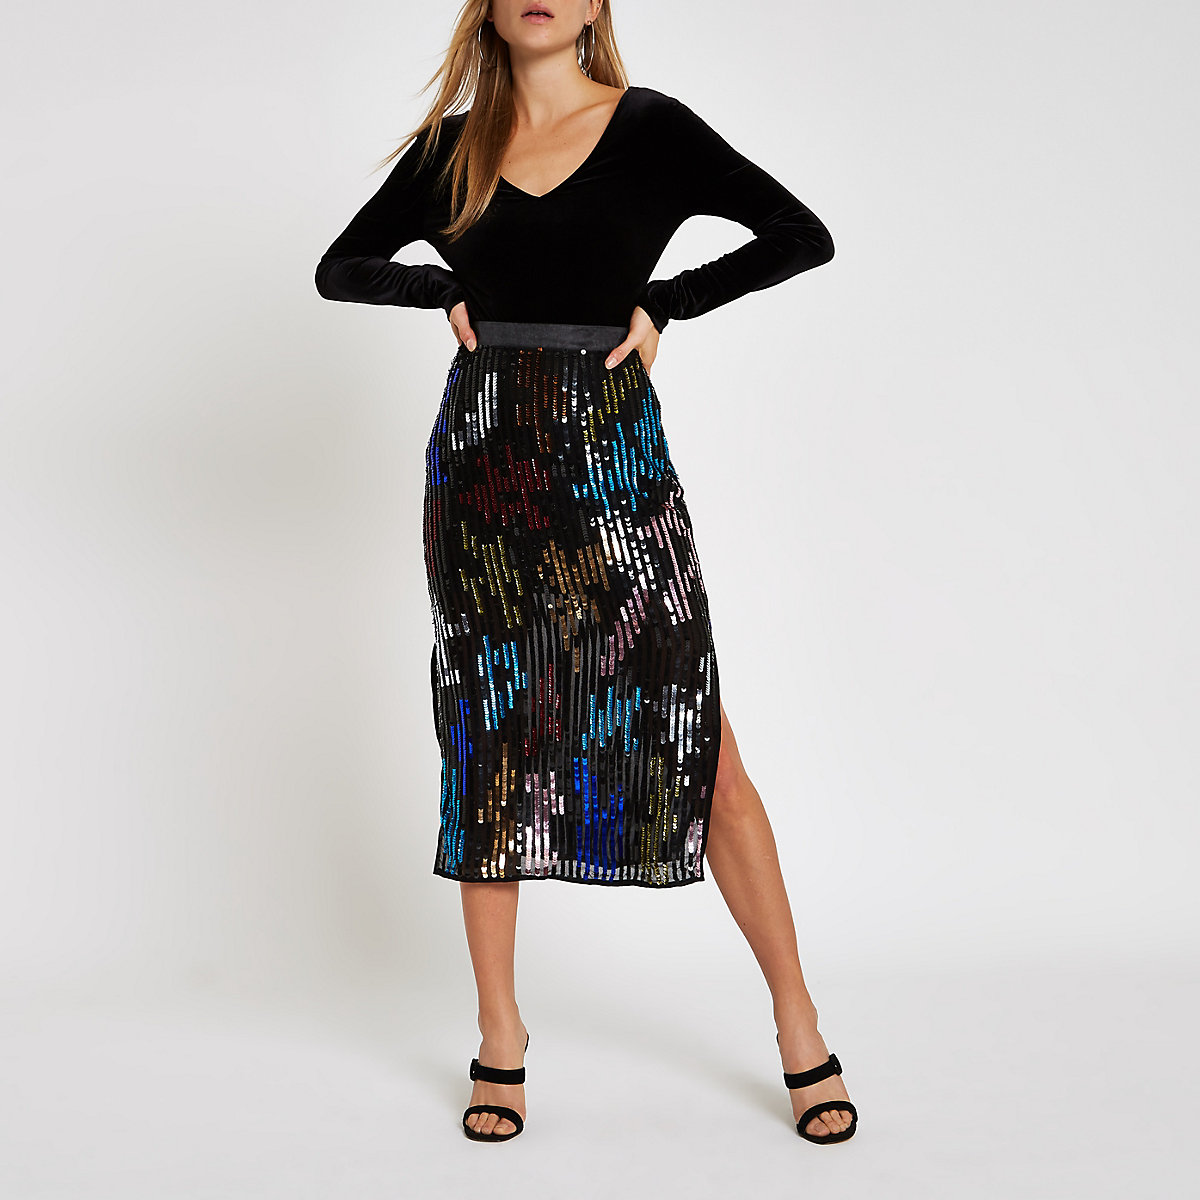 Black multicolored sequin pencil skirt